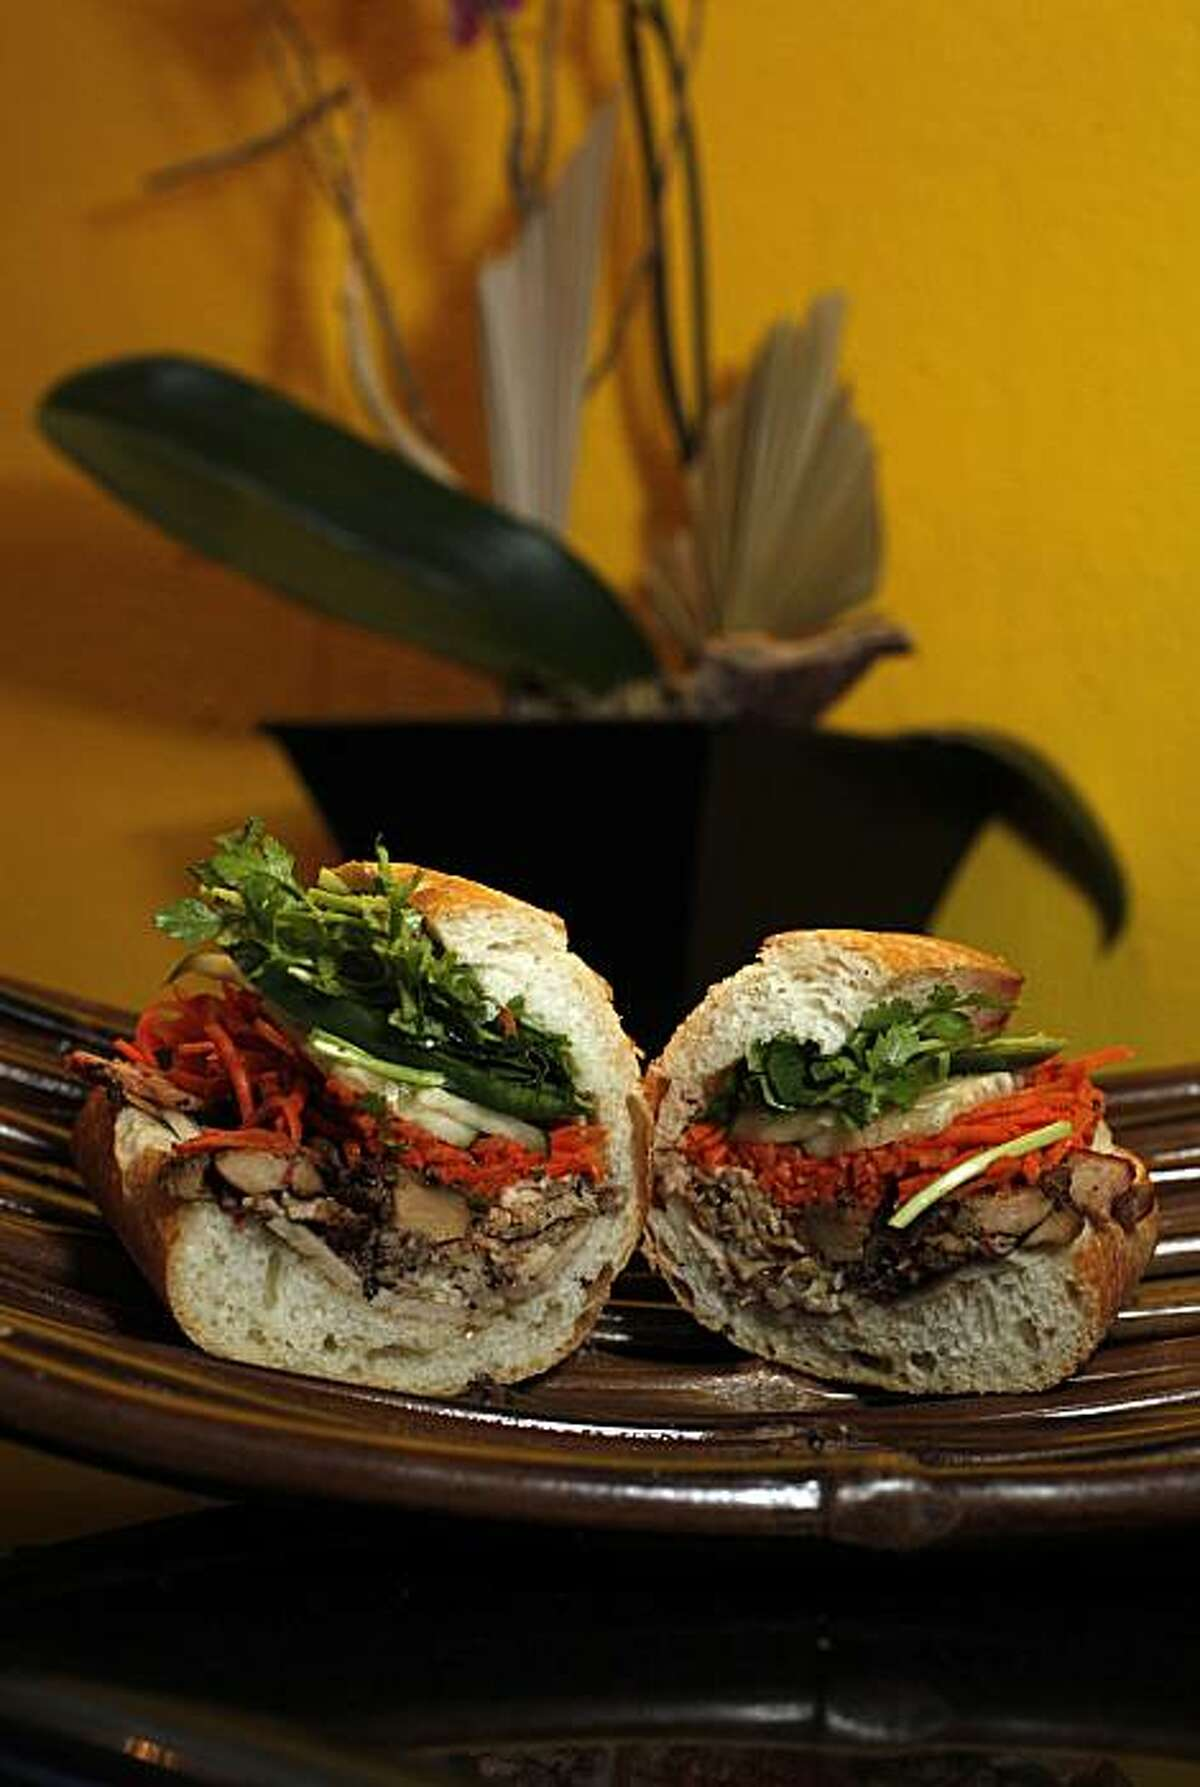 A Banh Mi sandwich, featured at the Saigon Deli Express, located at Embarcadero 4, in San Francisco,Ca. on Wednesday December 23, 2009.